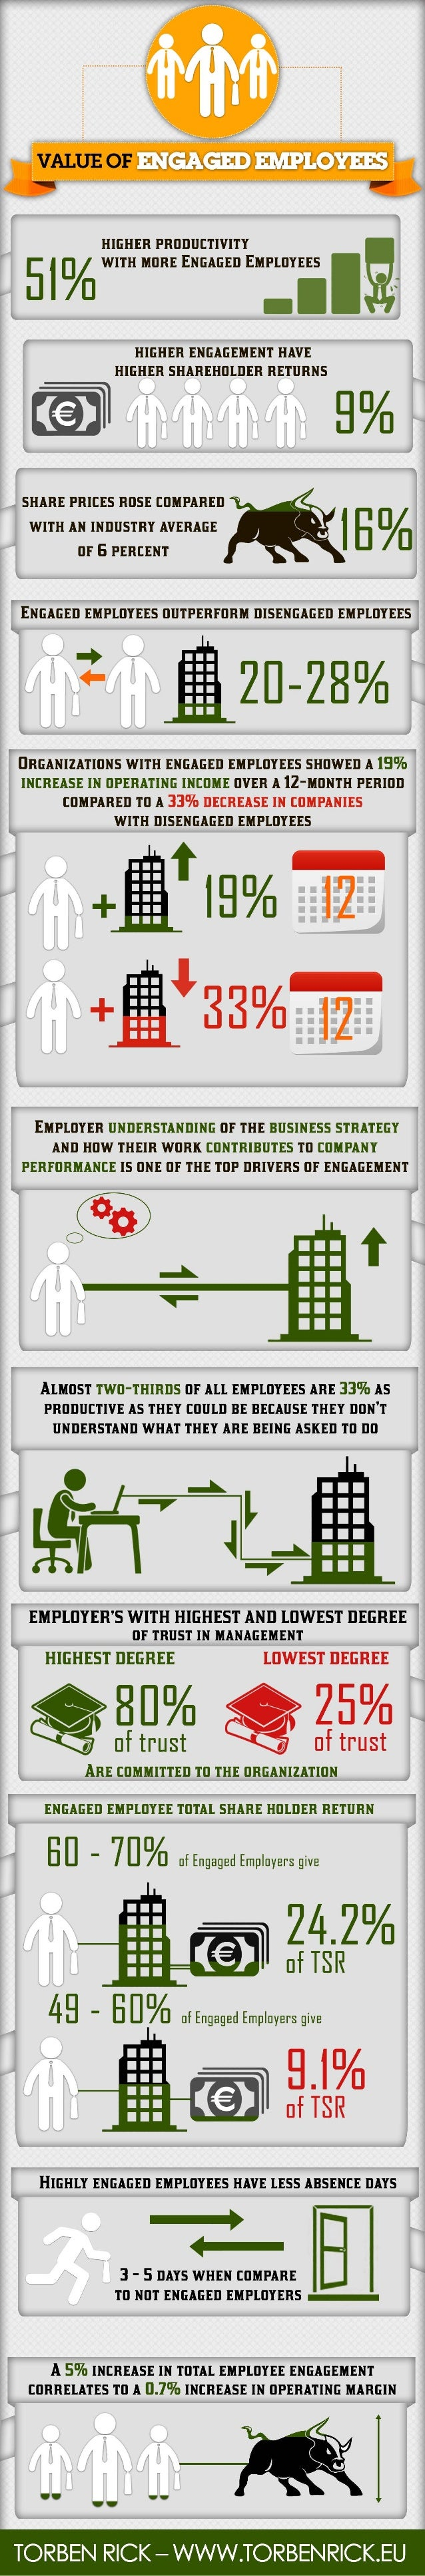 Infographic: The value of engaged employees